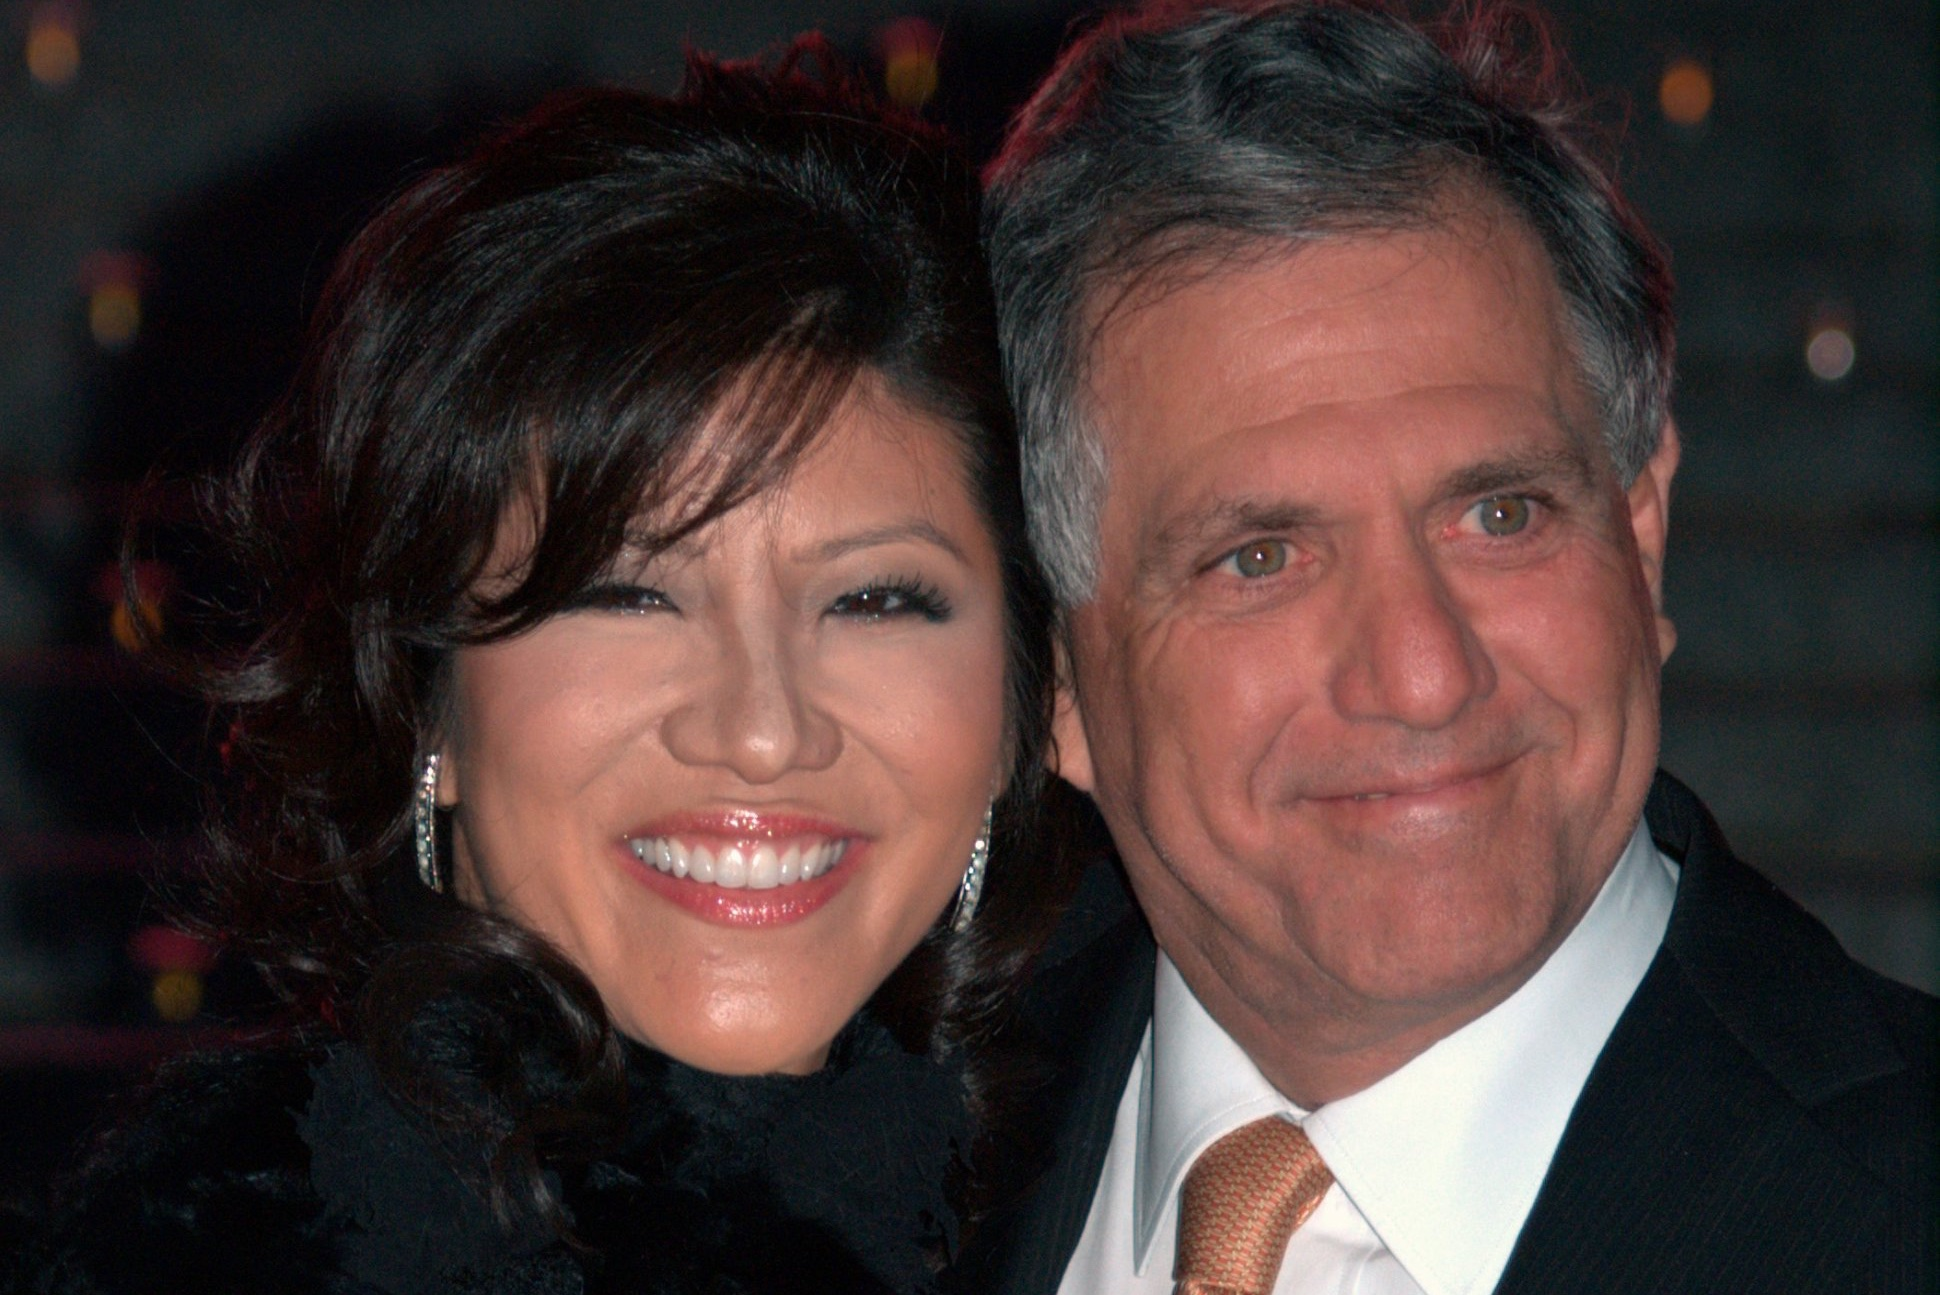 Les Moonves' wife Julie Chen borrows the Camille Cosby playbook